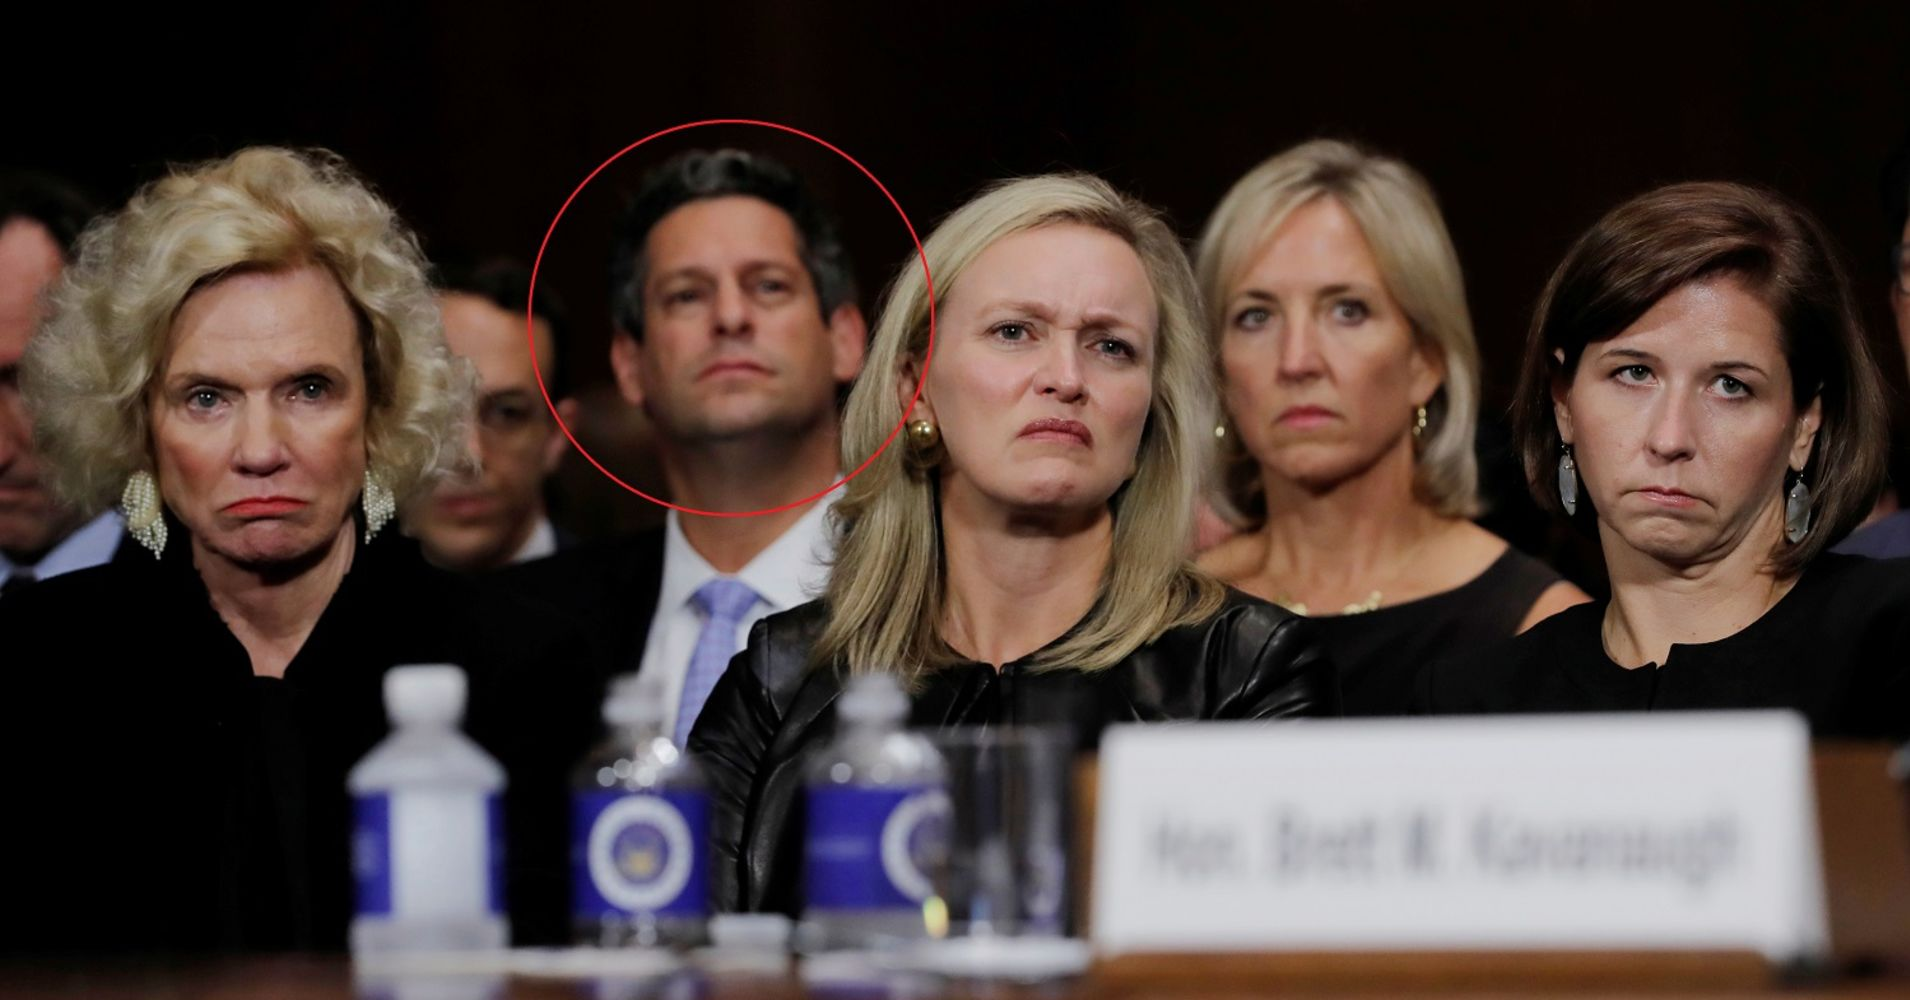 Facebook's head of policy was sitting front and center at Thursday's Kavanaugh hearings